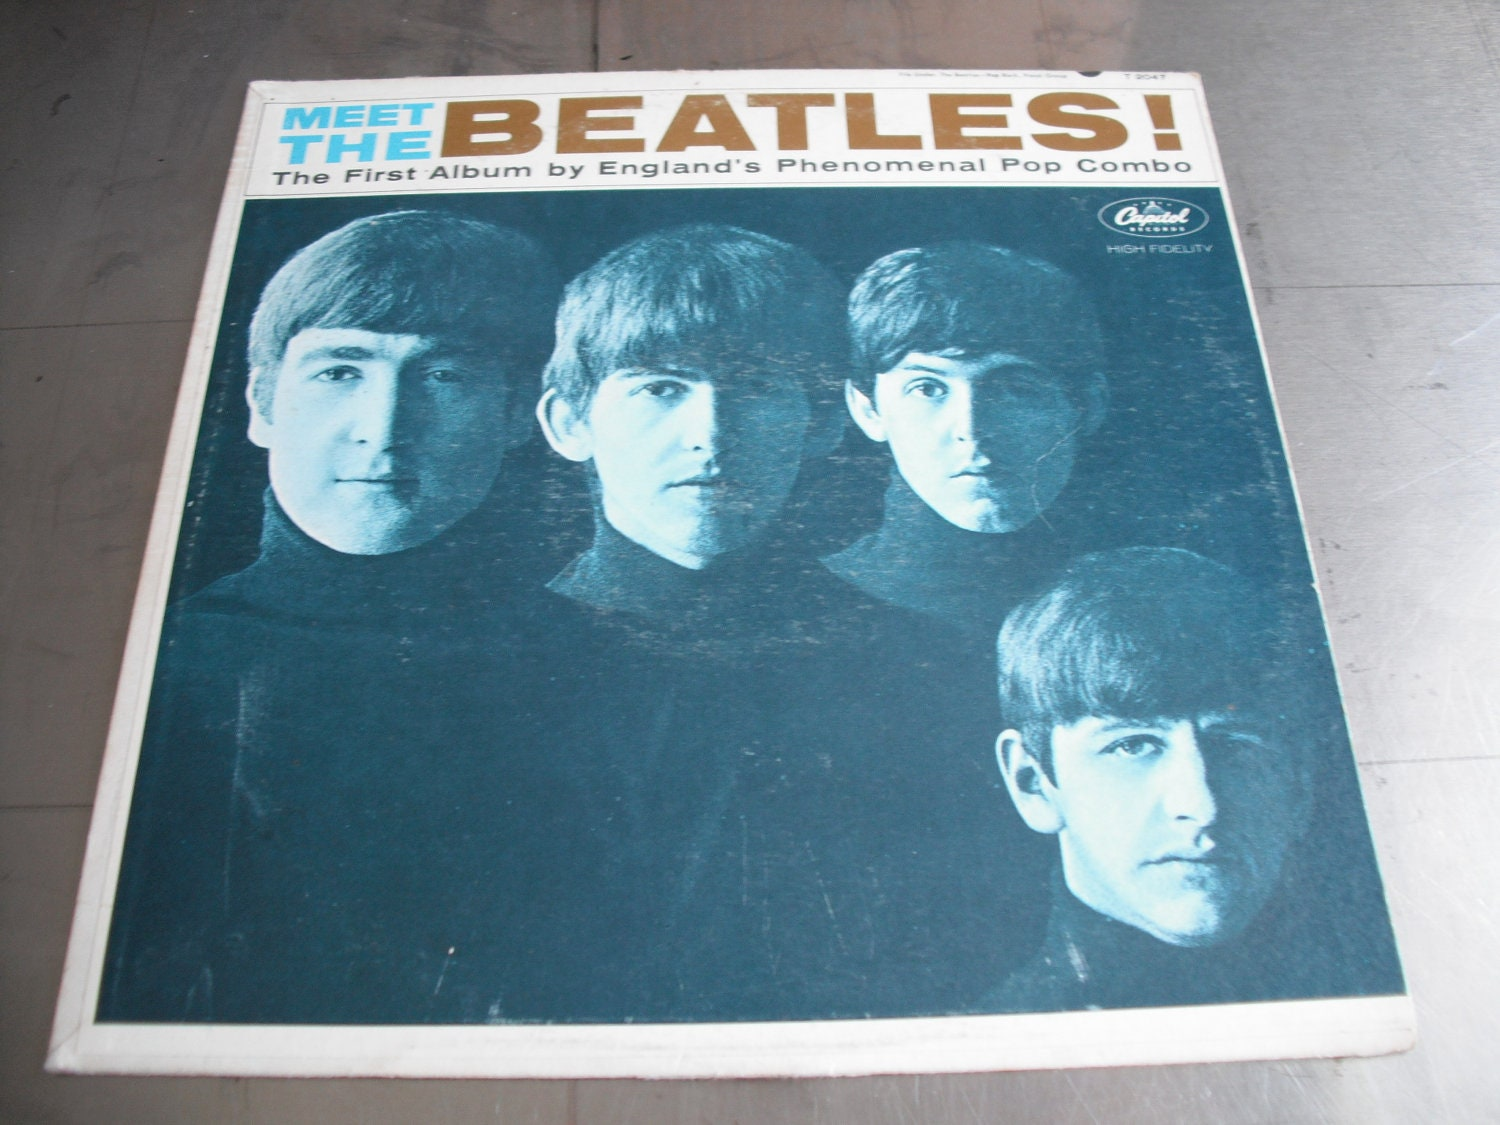 The Beatles Meet The Beatles Capitol Records By Oldgregrecords